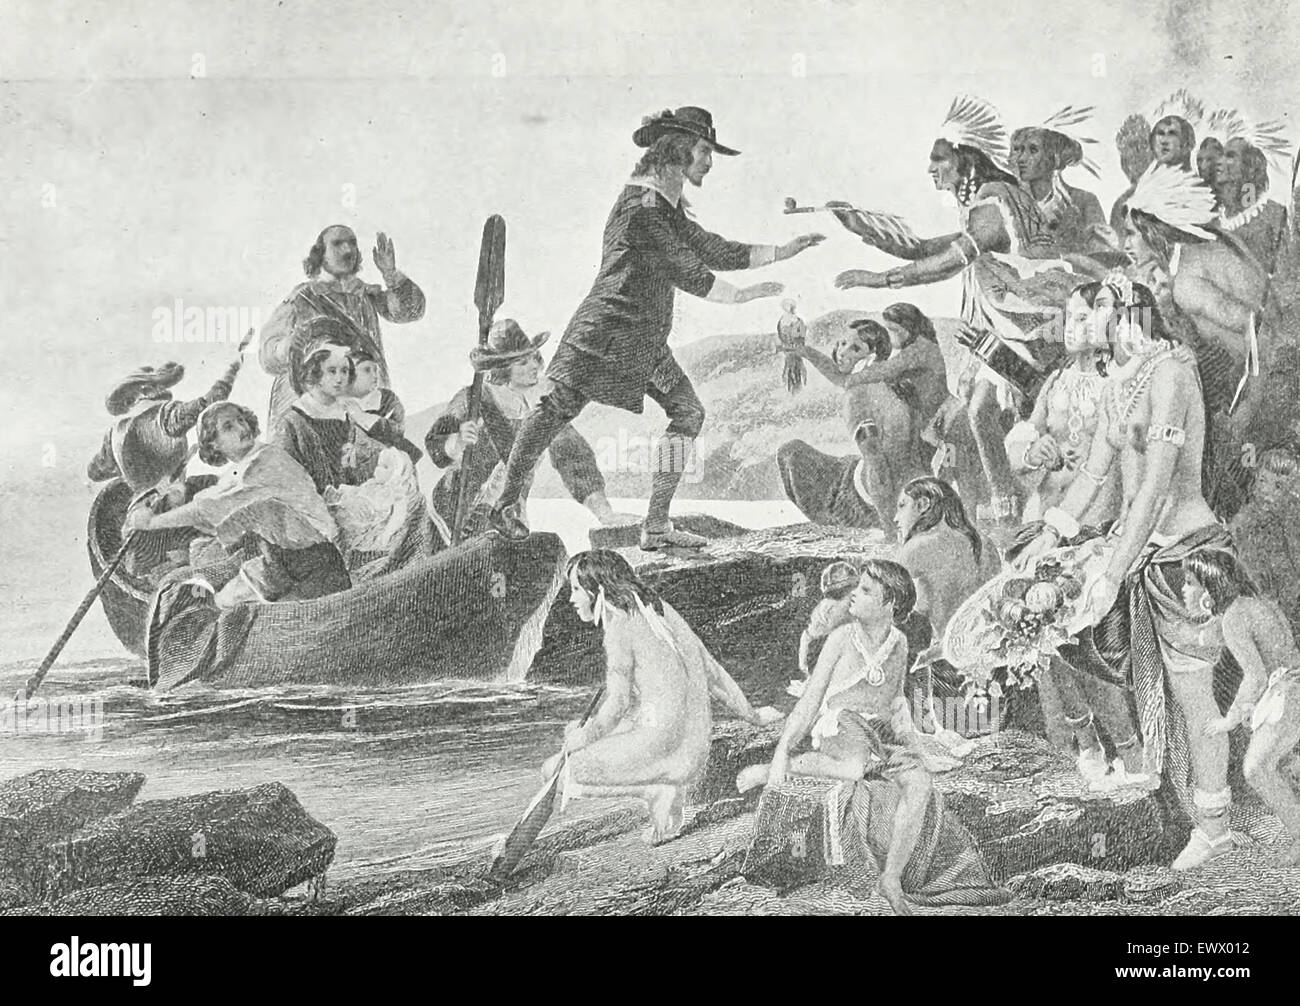 The Landing of Roger Williams in Rhode Island, 1636